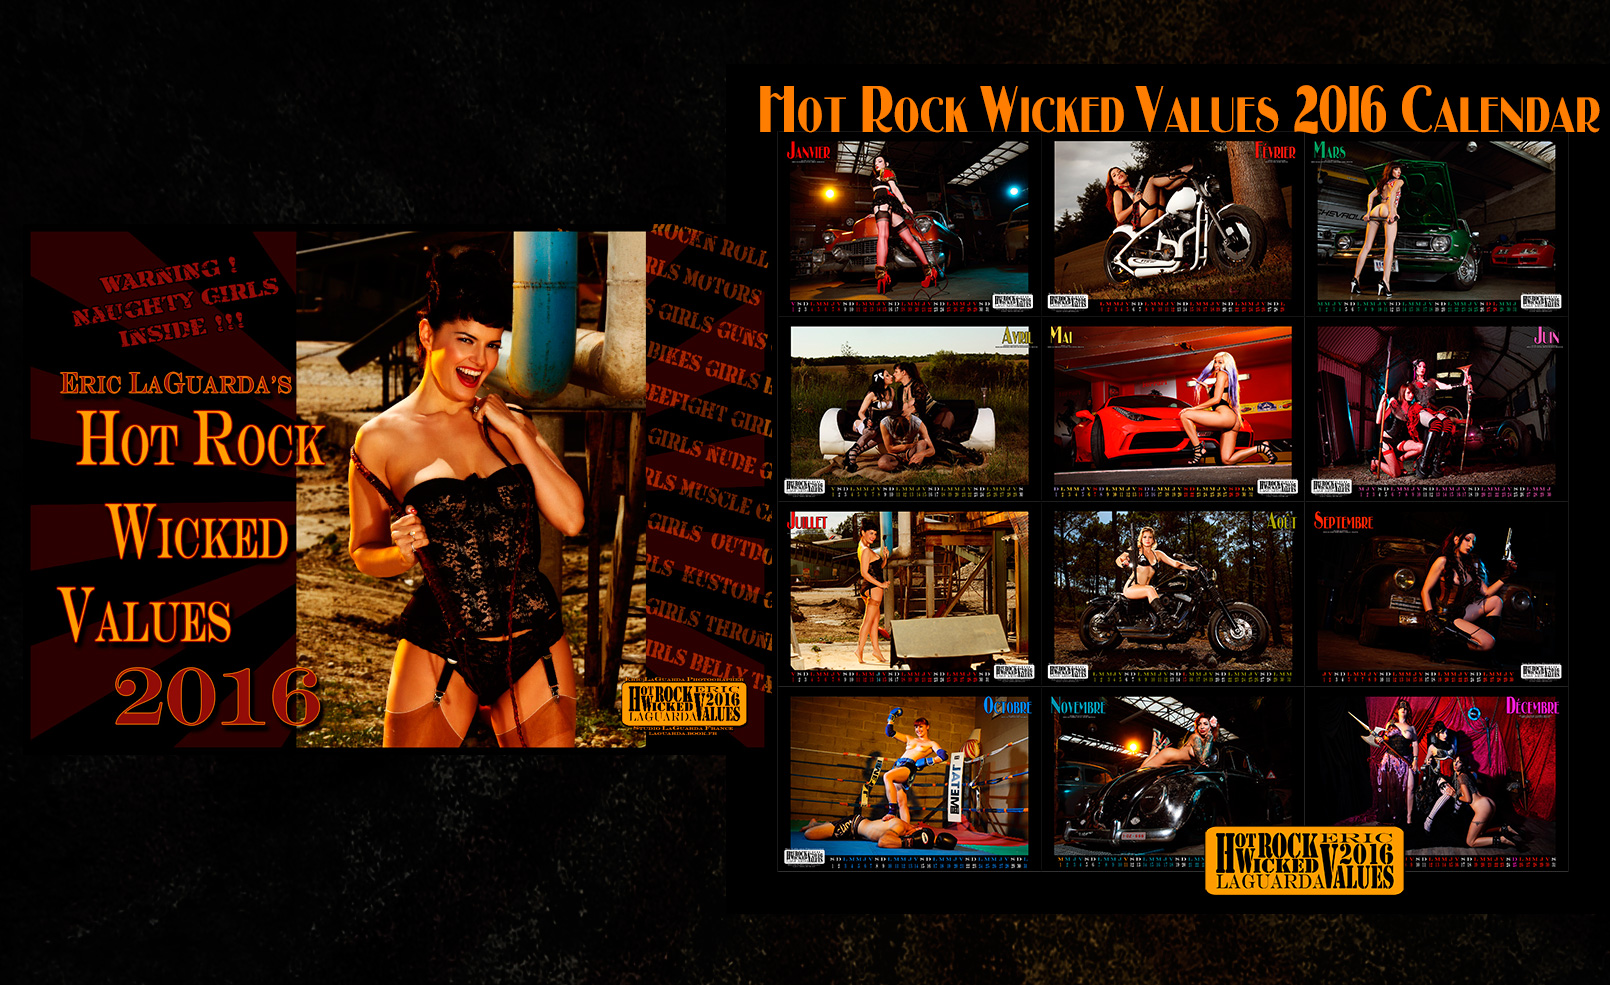 Hot Rock Wicked Values 2016